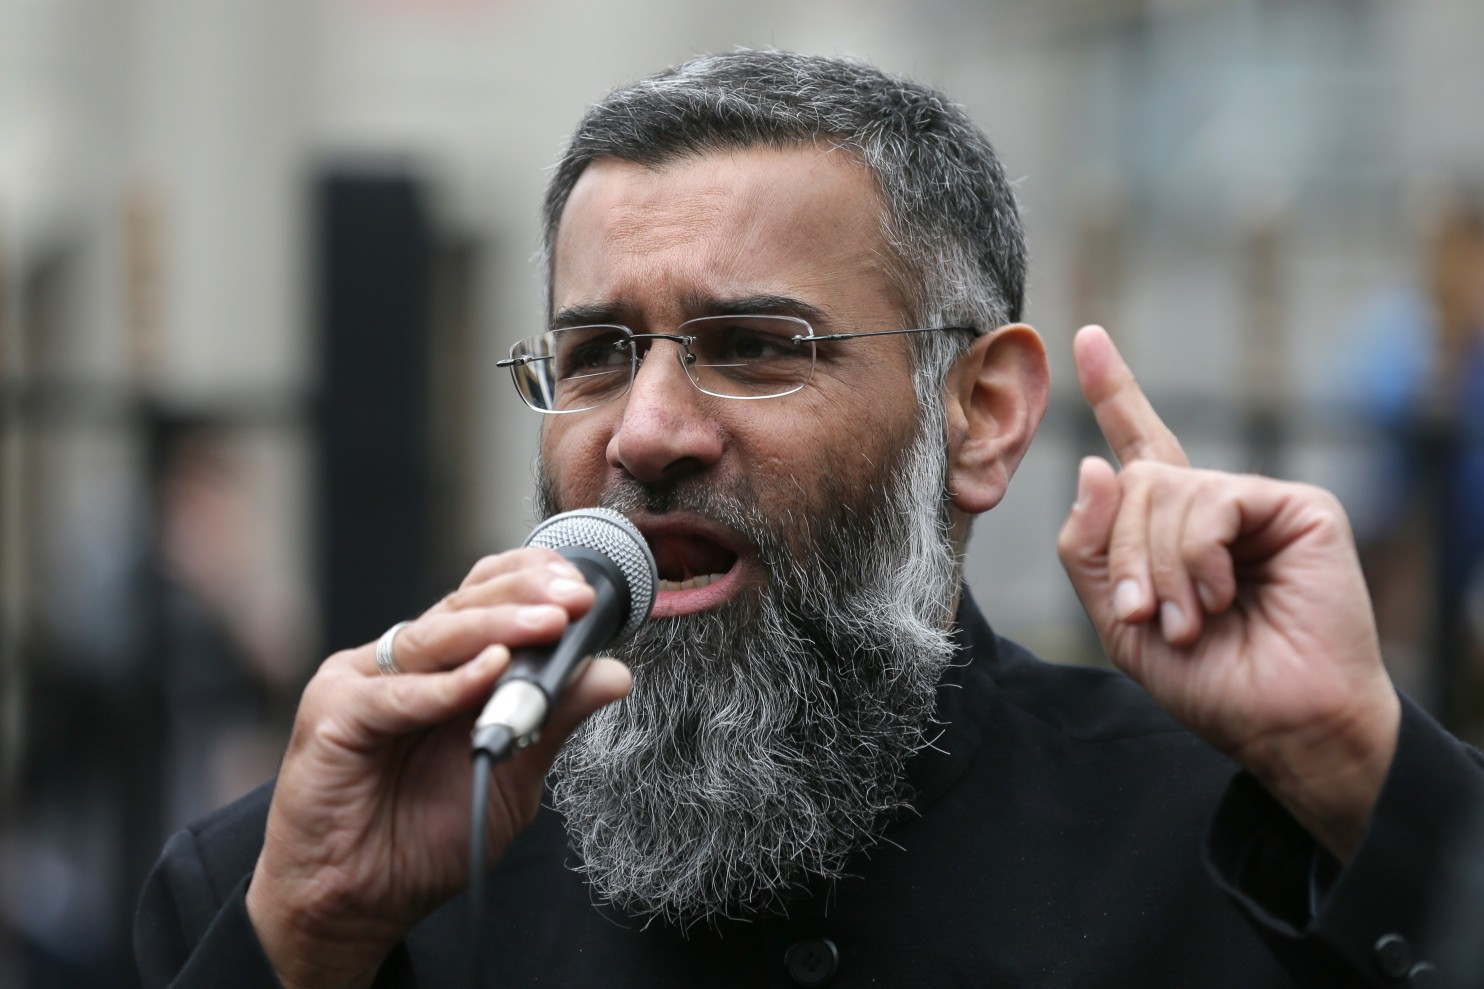 Anjem Choudary, speaking in April 2015 in a London mosque, has gained a reputation as a Pied Piper for young radicals and a cheerleader for the Islamic State. (Tim Ireland/AP)